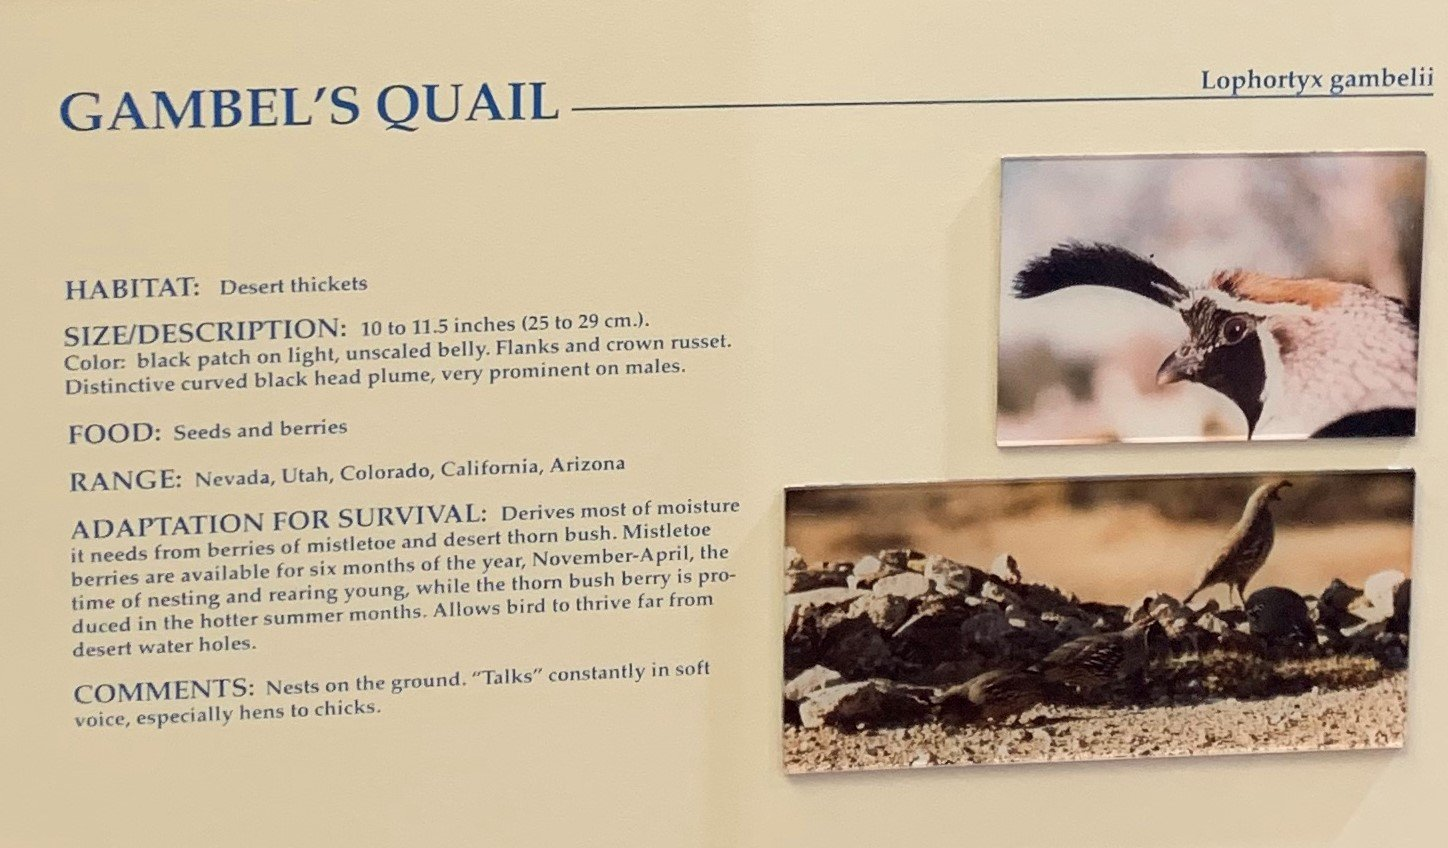 What is a Gambel's Quail